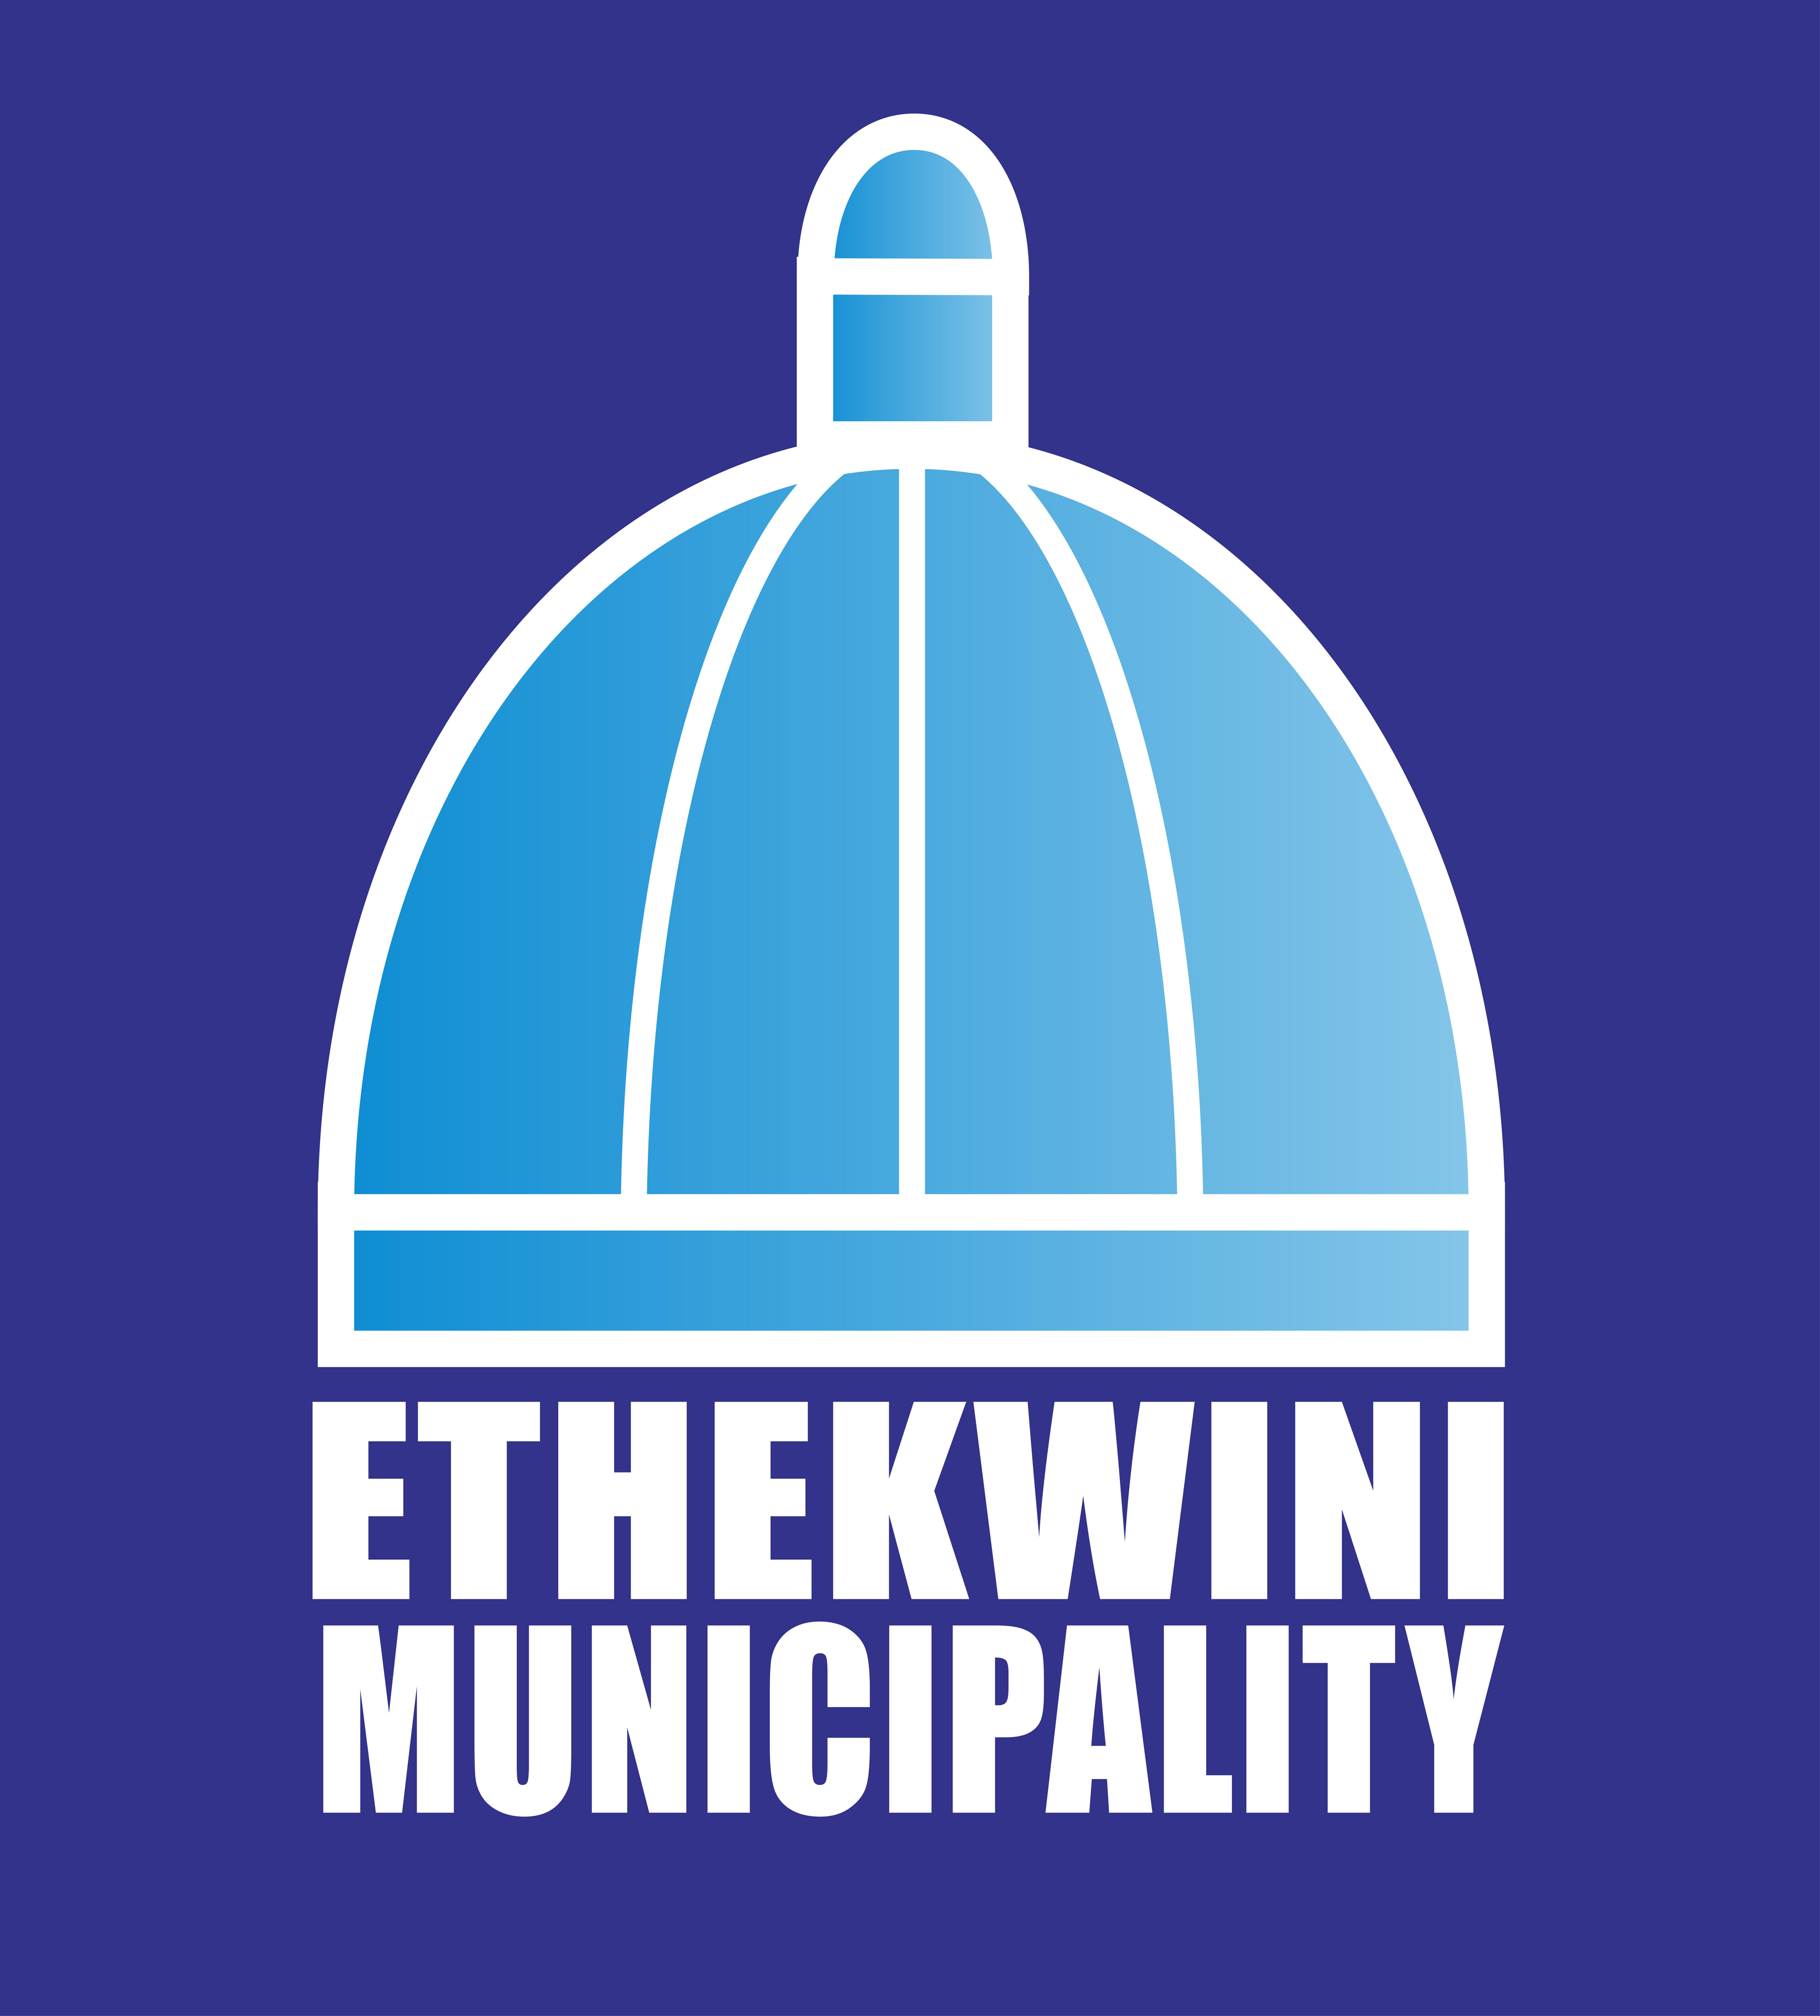 true http://static.iclei.org/ccr-images/govlogo-all/eThekwini_Metropolitan_Municipality.png